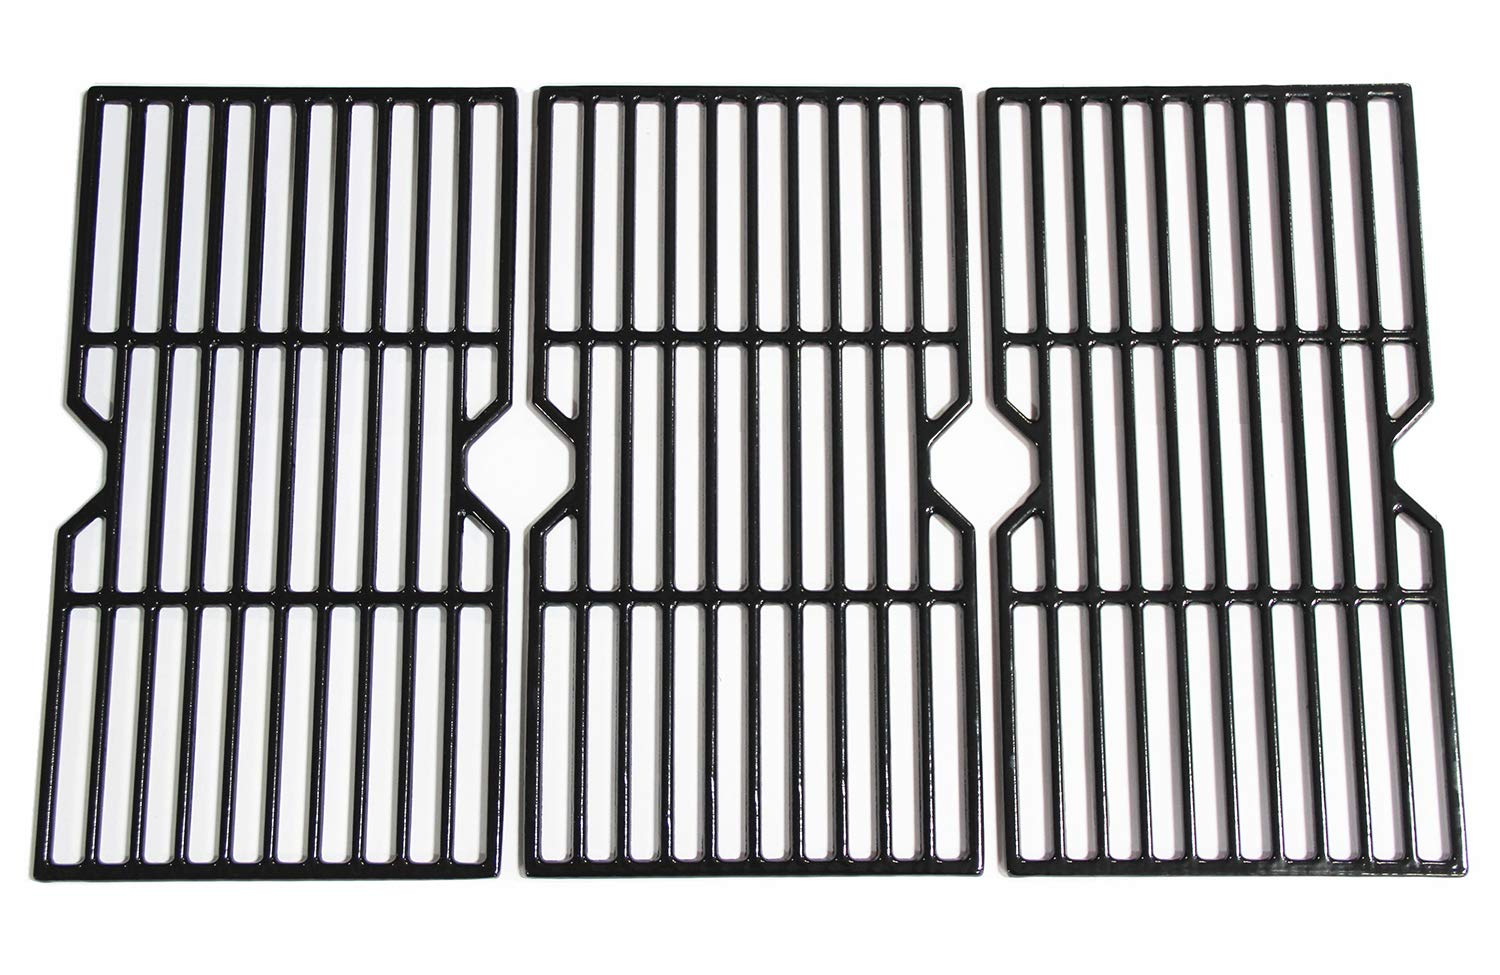 Hongso 16 7/8'' Cast Iron Grill Grates Replacement for Gas Grill Charbroil 463436213, 463436214, 463436215, 463420508, 463420509, 463440109, 463441312, 463441514, Thermos 461442114, PCH763 by Hongso